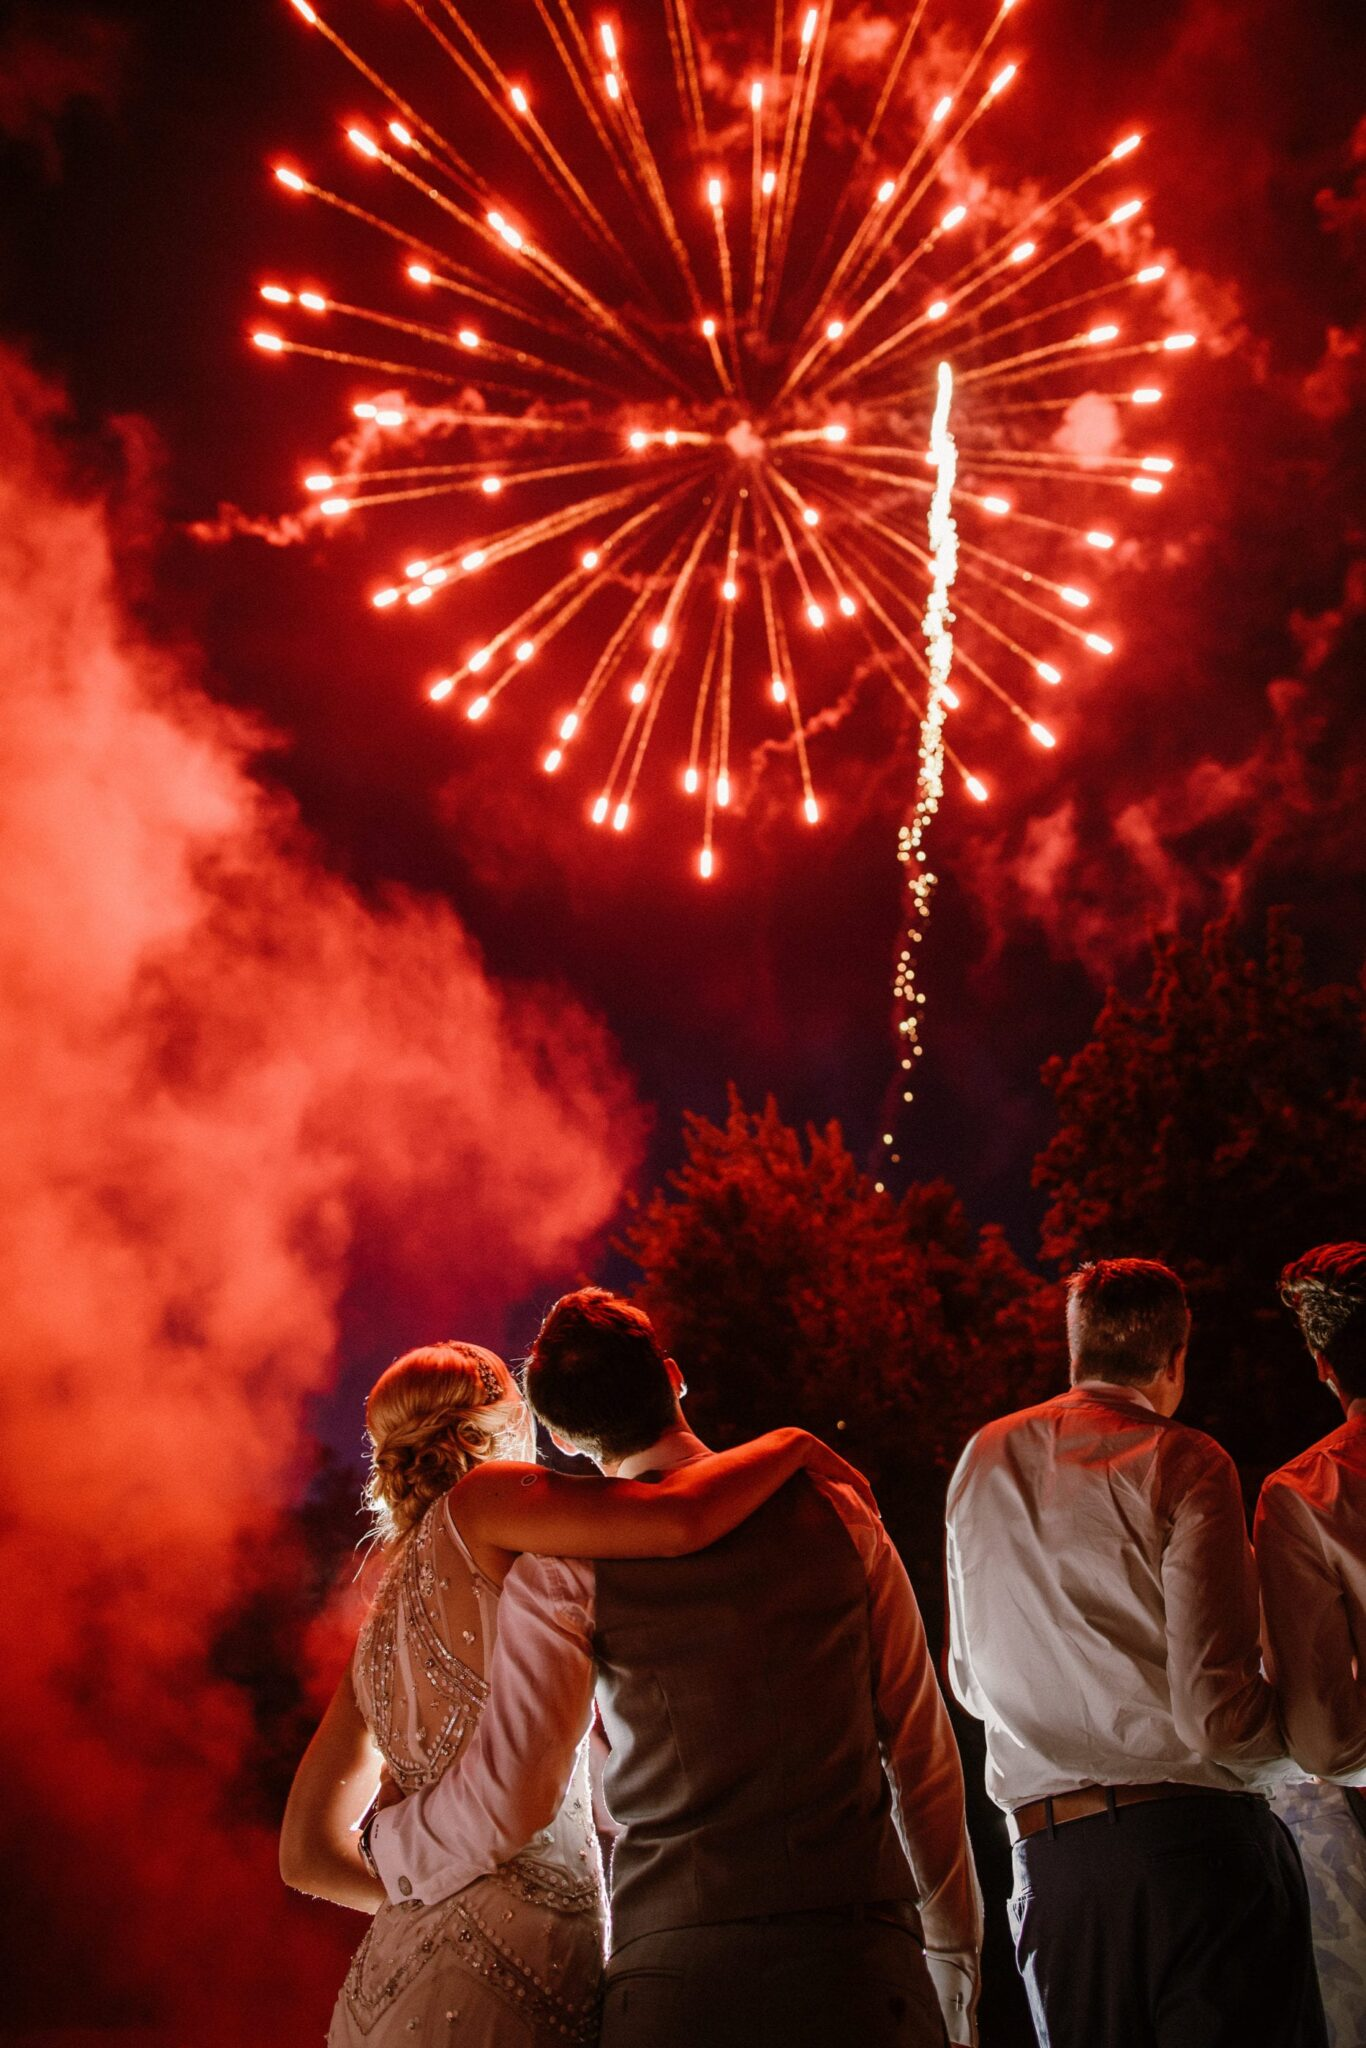 A Starry Night in New England Luxury wedding planning epic fireworks display